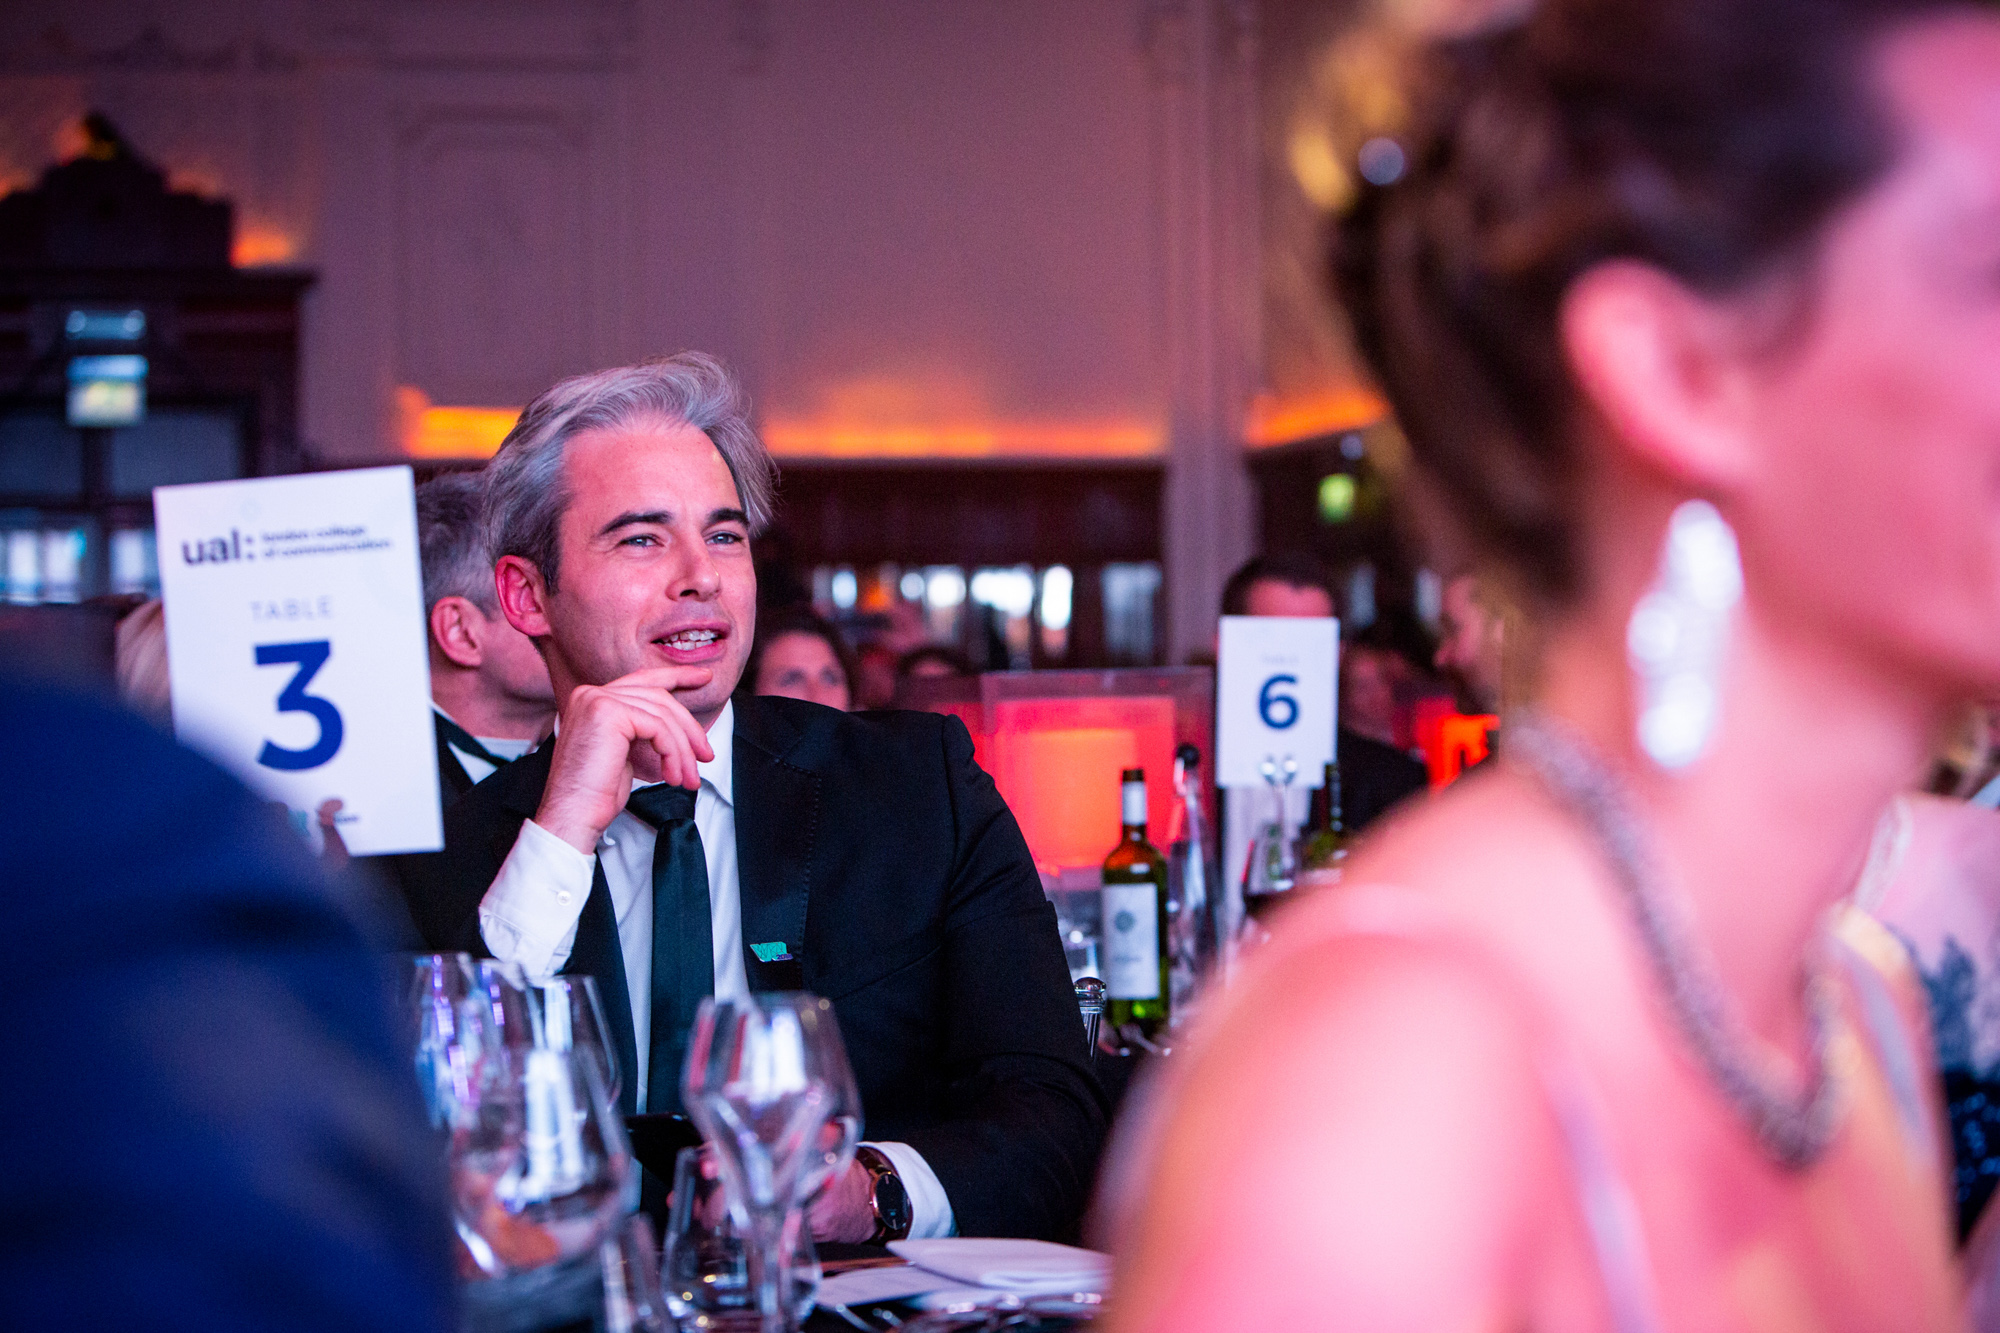 Raccoon_London_VR_Awards_2018_Event_Photography-17.jpg